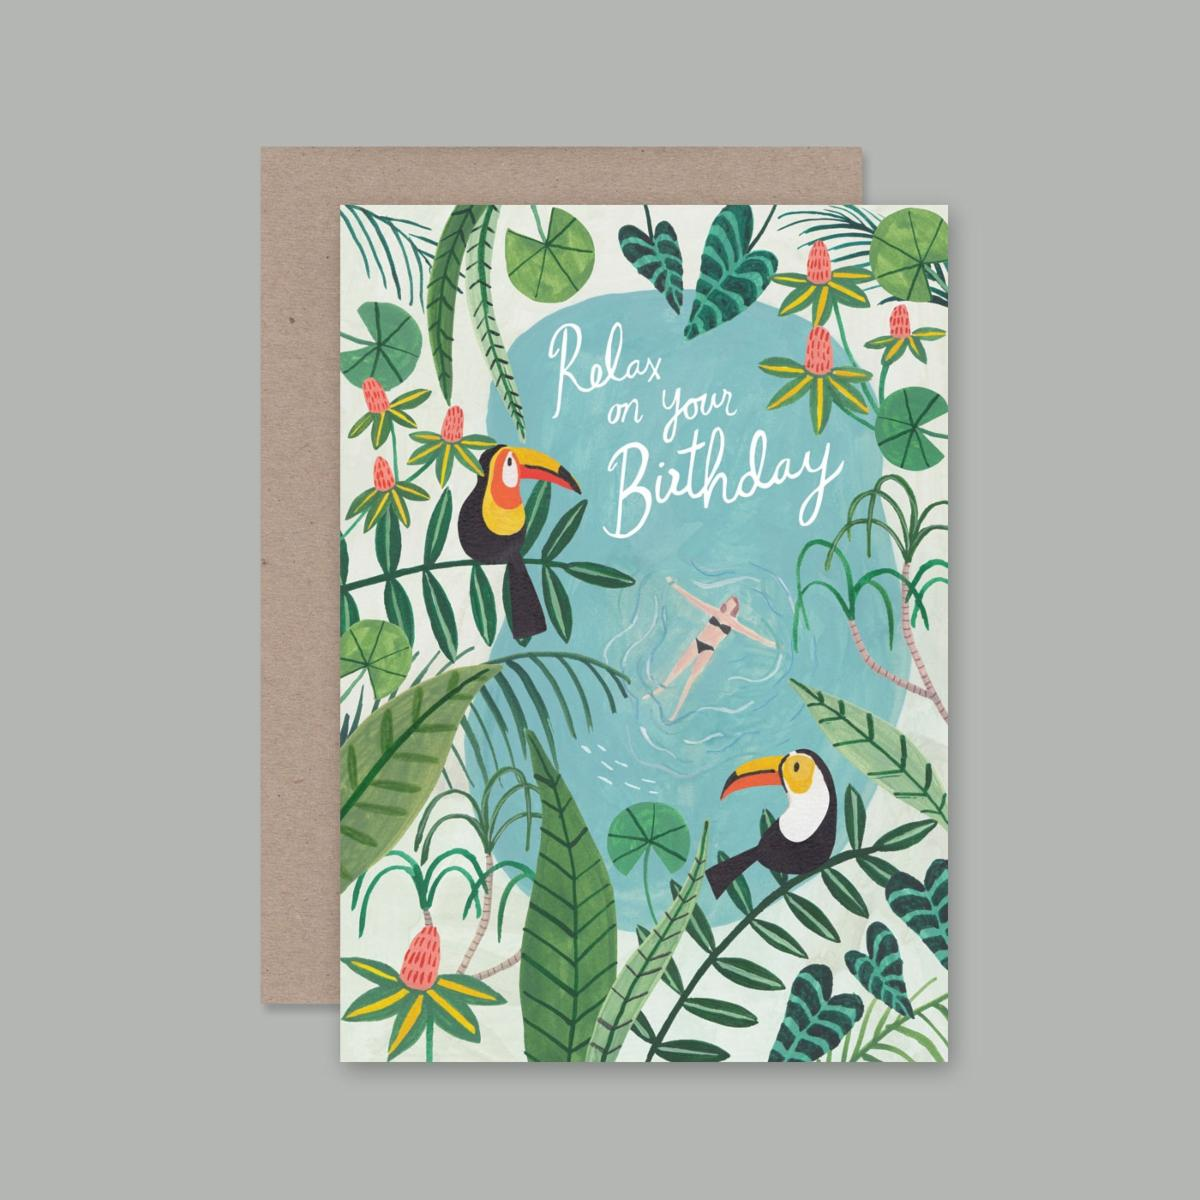 Relax On Your Birthday Card | AHD Paper Co.